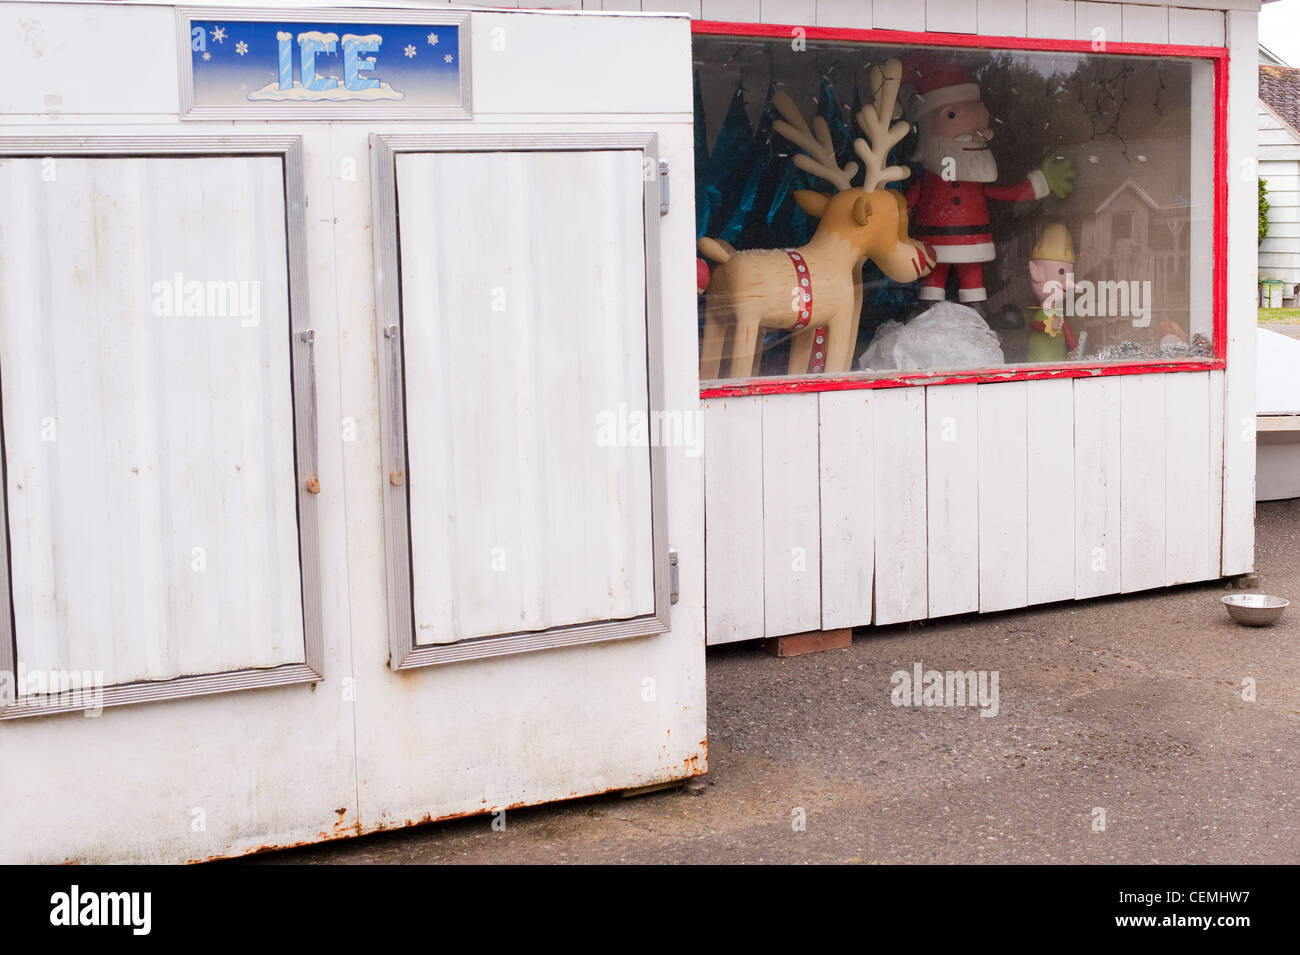 Store front with ice machine and Santa and his reindeer behind glass - Stock Image